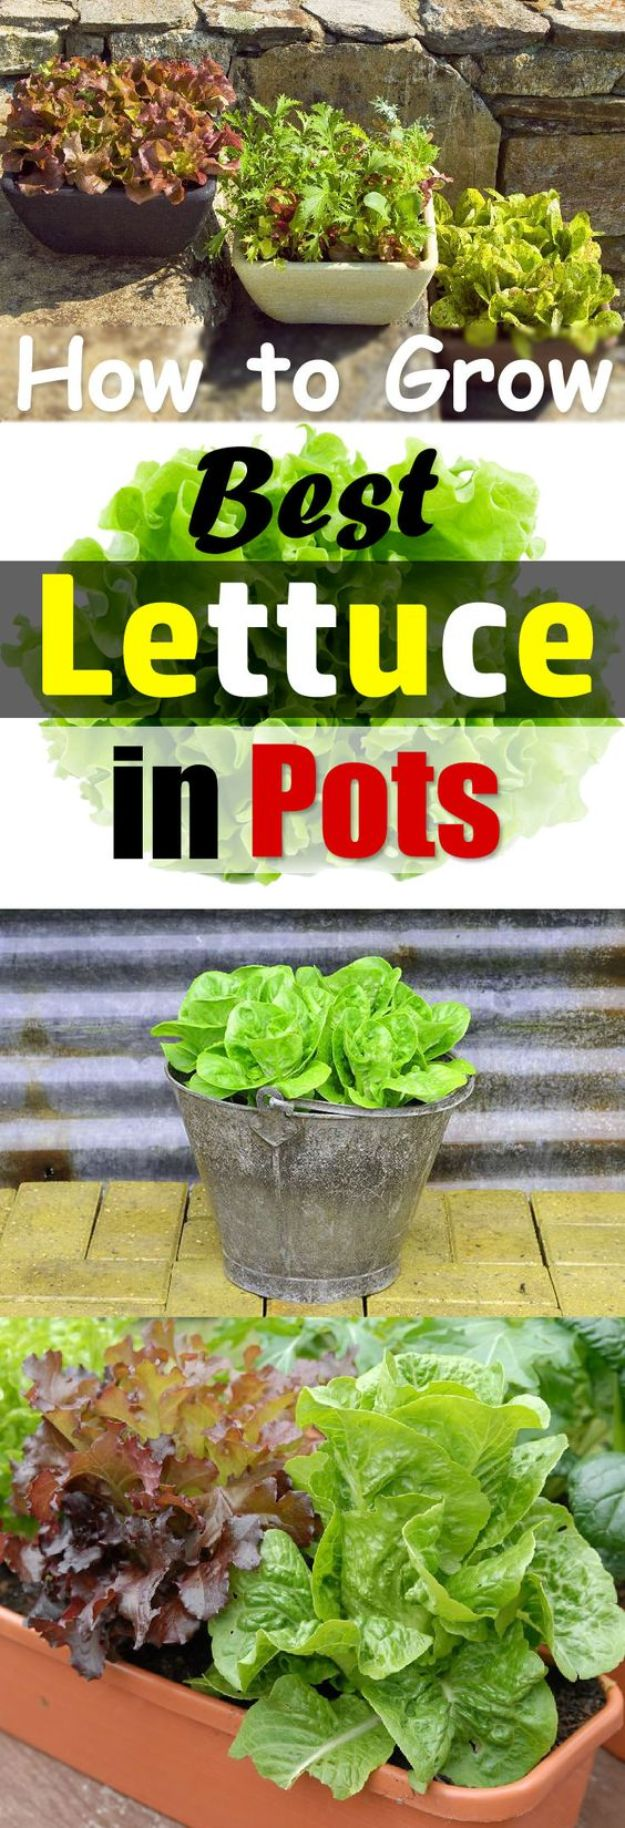 Container Gardening Ideas - Growing Lettuce In Containers - Easy Garden Projects for Containers and Growing Plants in Small Spaces - DIY Potting Tips and Planter Boxes for Vegetables, Herbs and Flowers - Simple Ideas for Beginners -Shade, Full Sun, Pation and Yard Landscape Idea tutorials